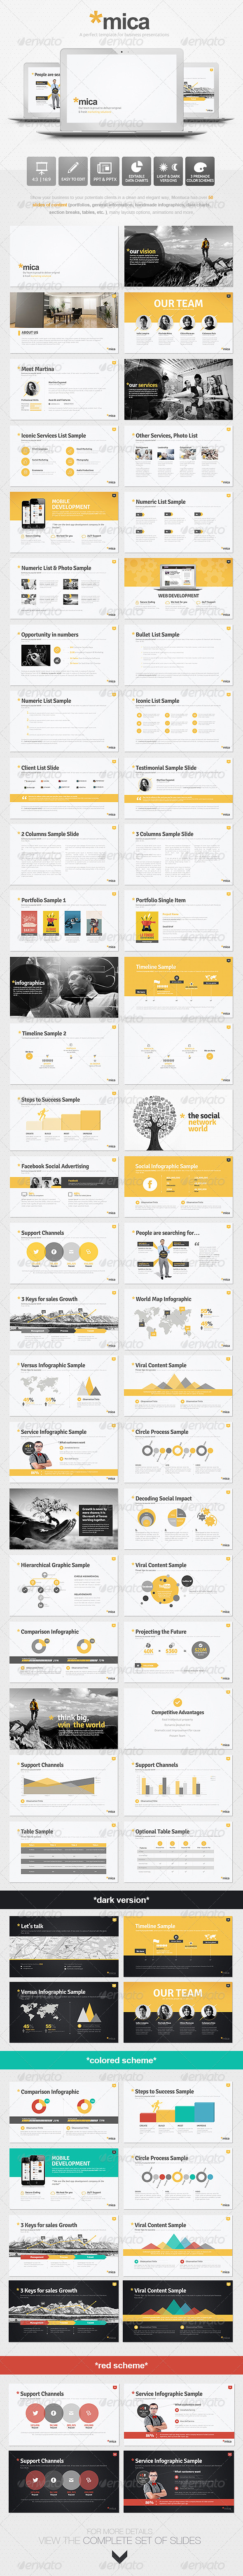 GraphicRiver Mica Powerpoint Presentation Template 5641213